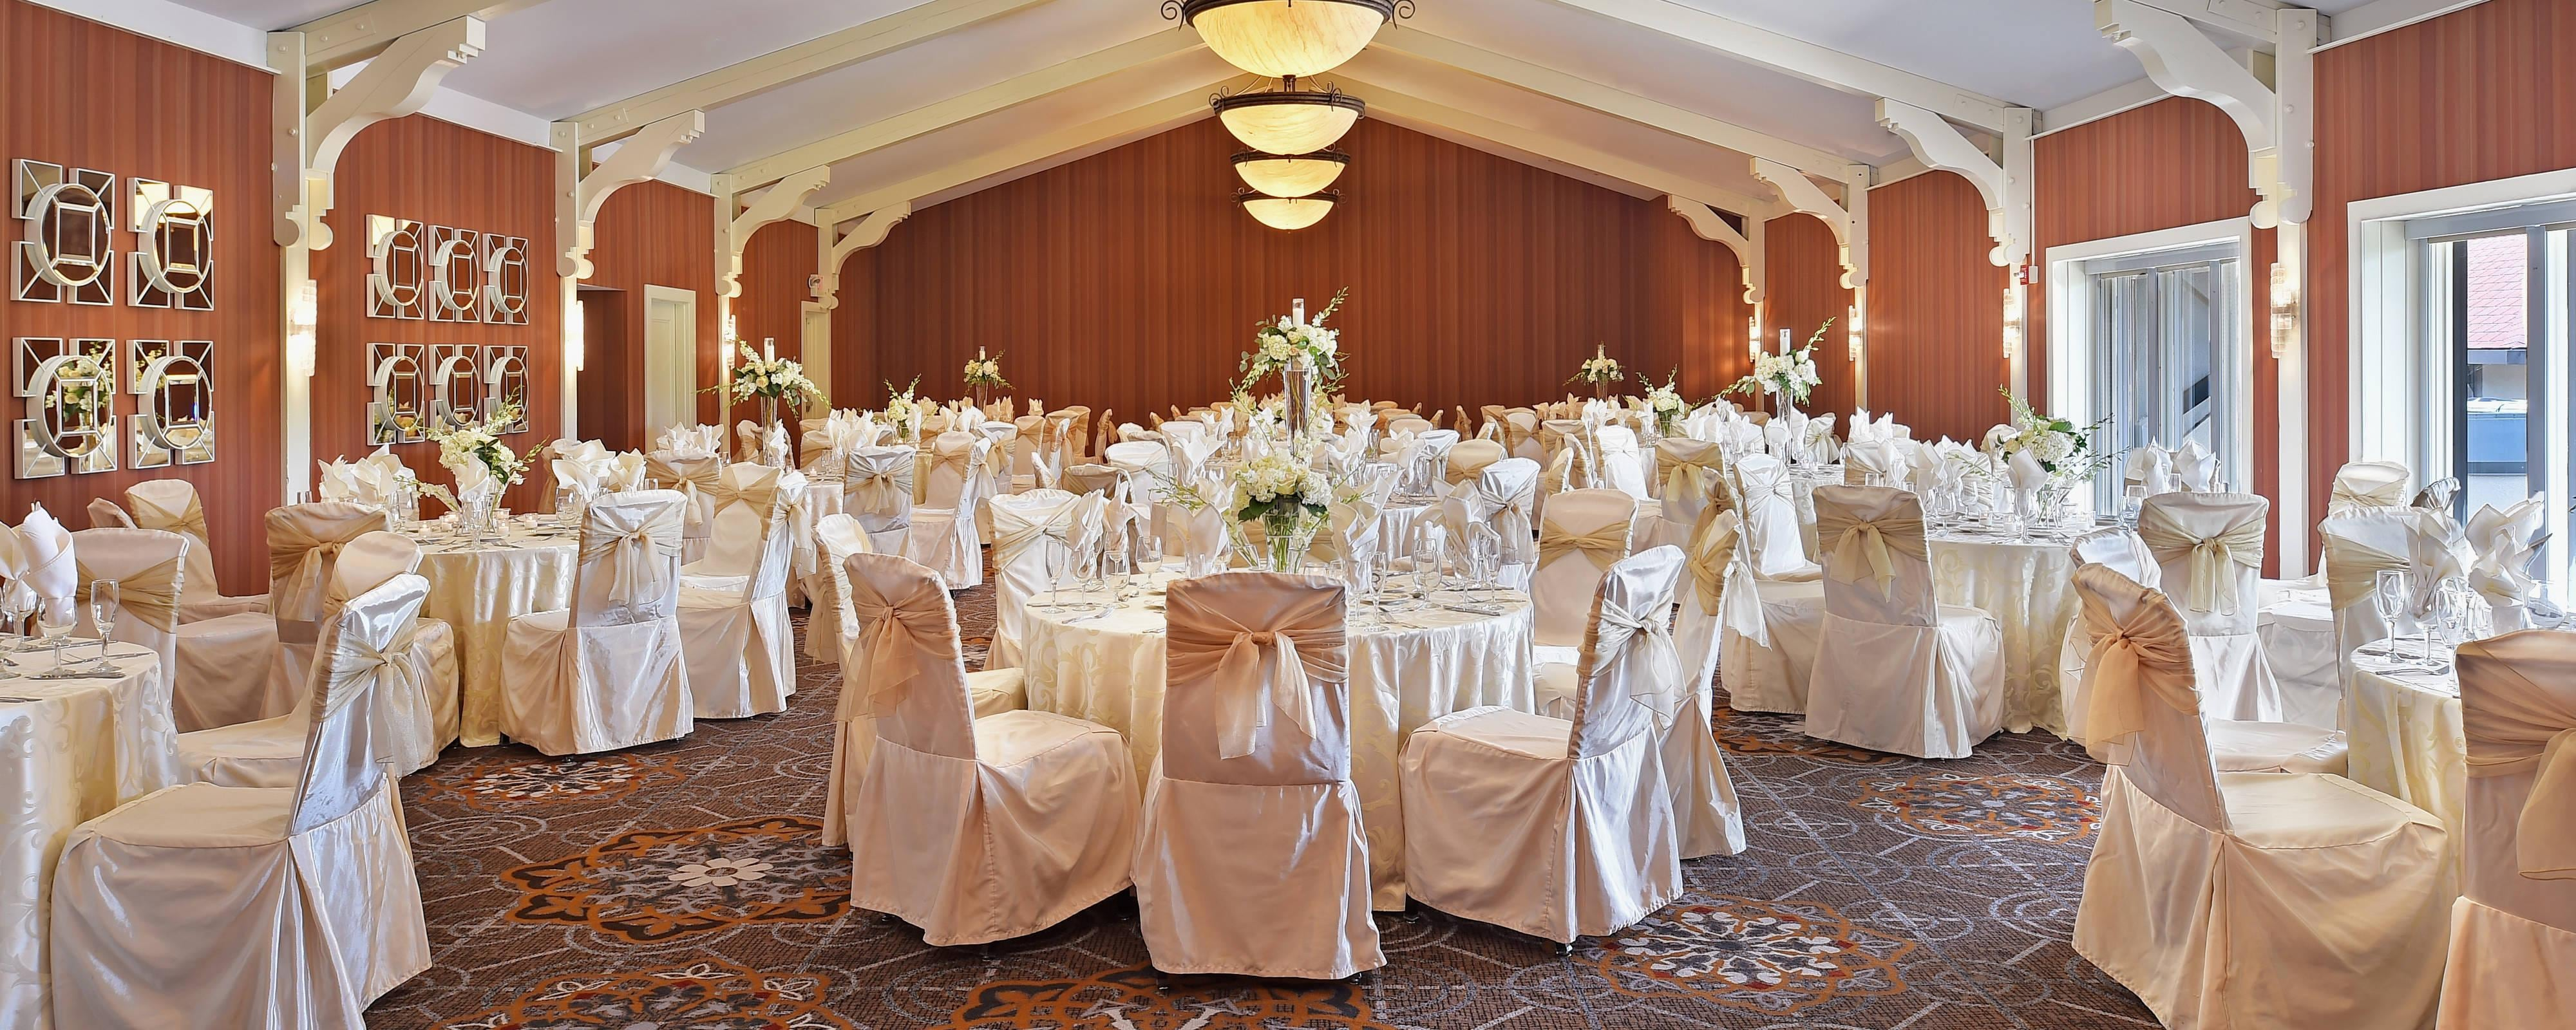 Wedding Venue Hotel In St Louis Sheraton Westport Chalet Hotel